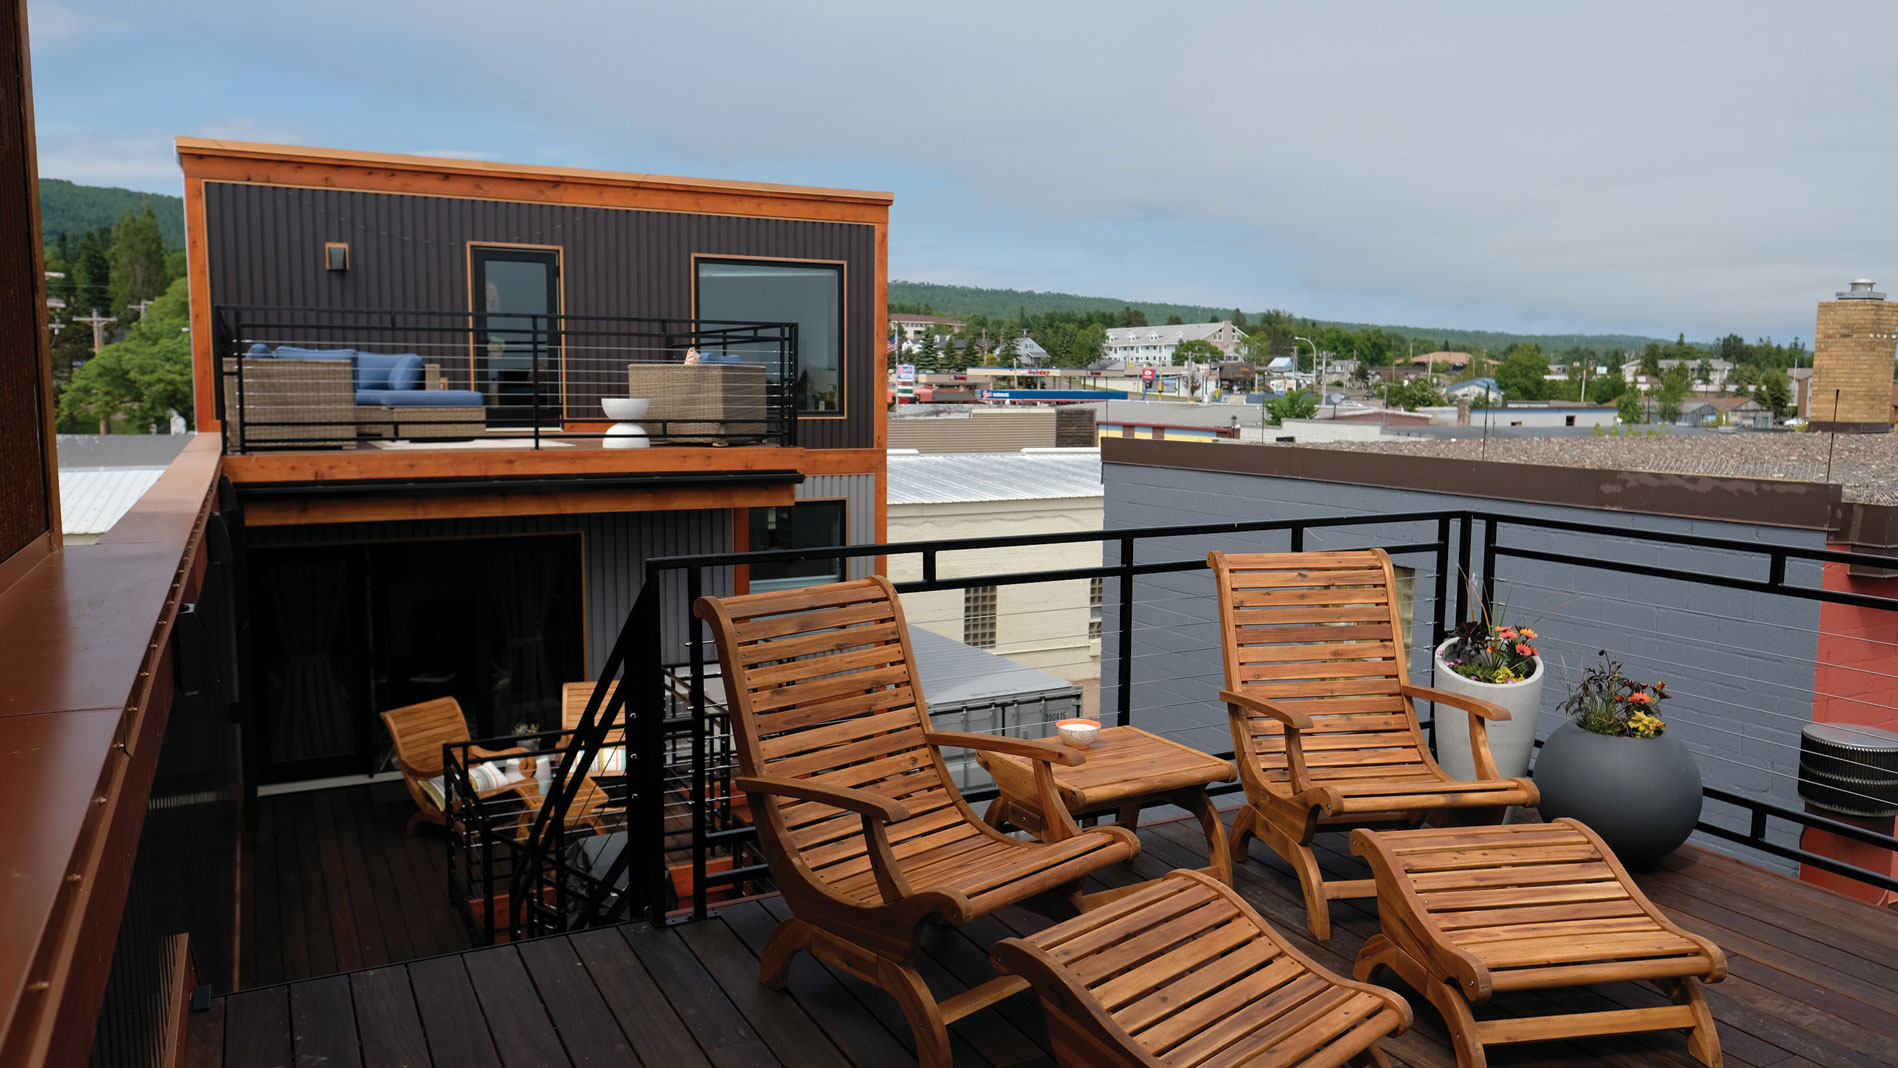 The roof deck looks out onto Grand Marais Harbor